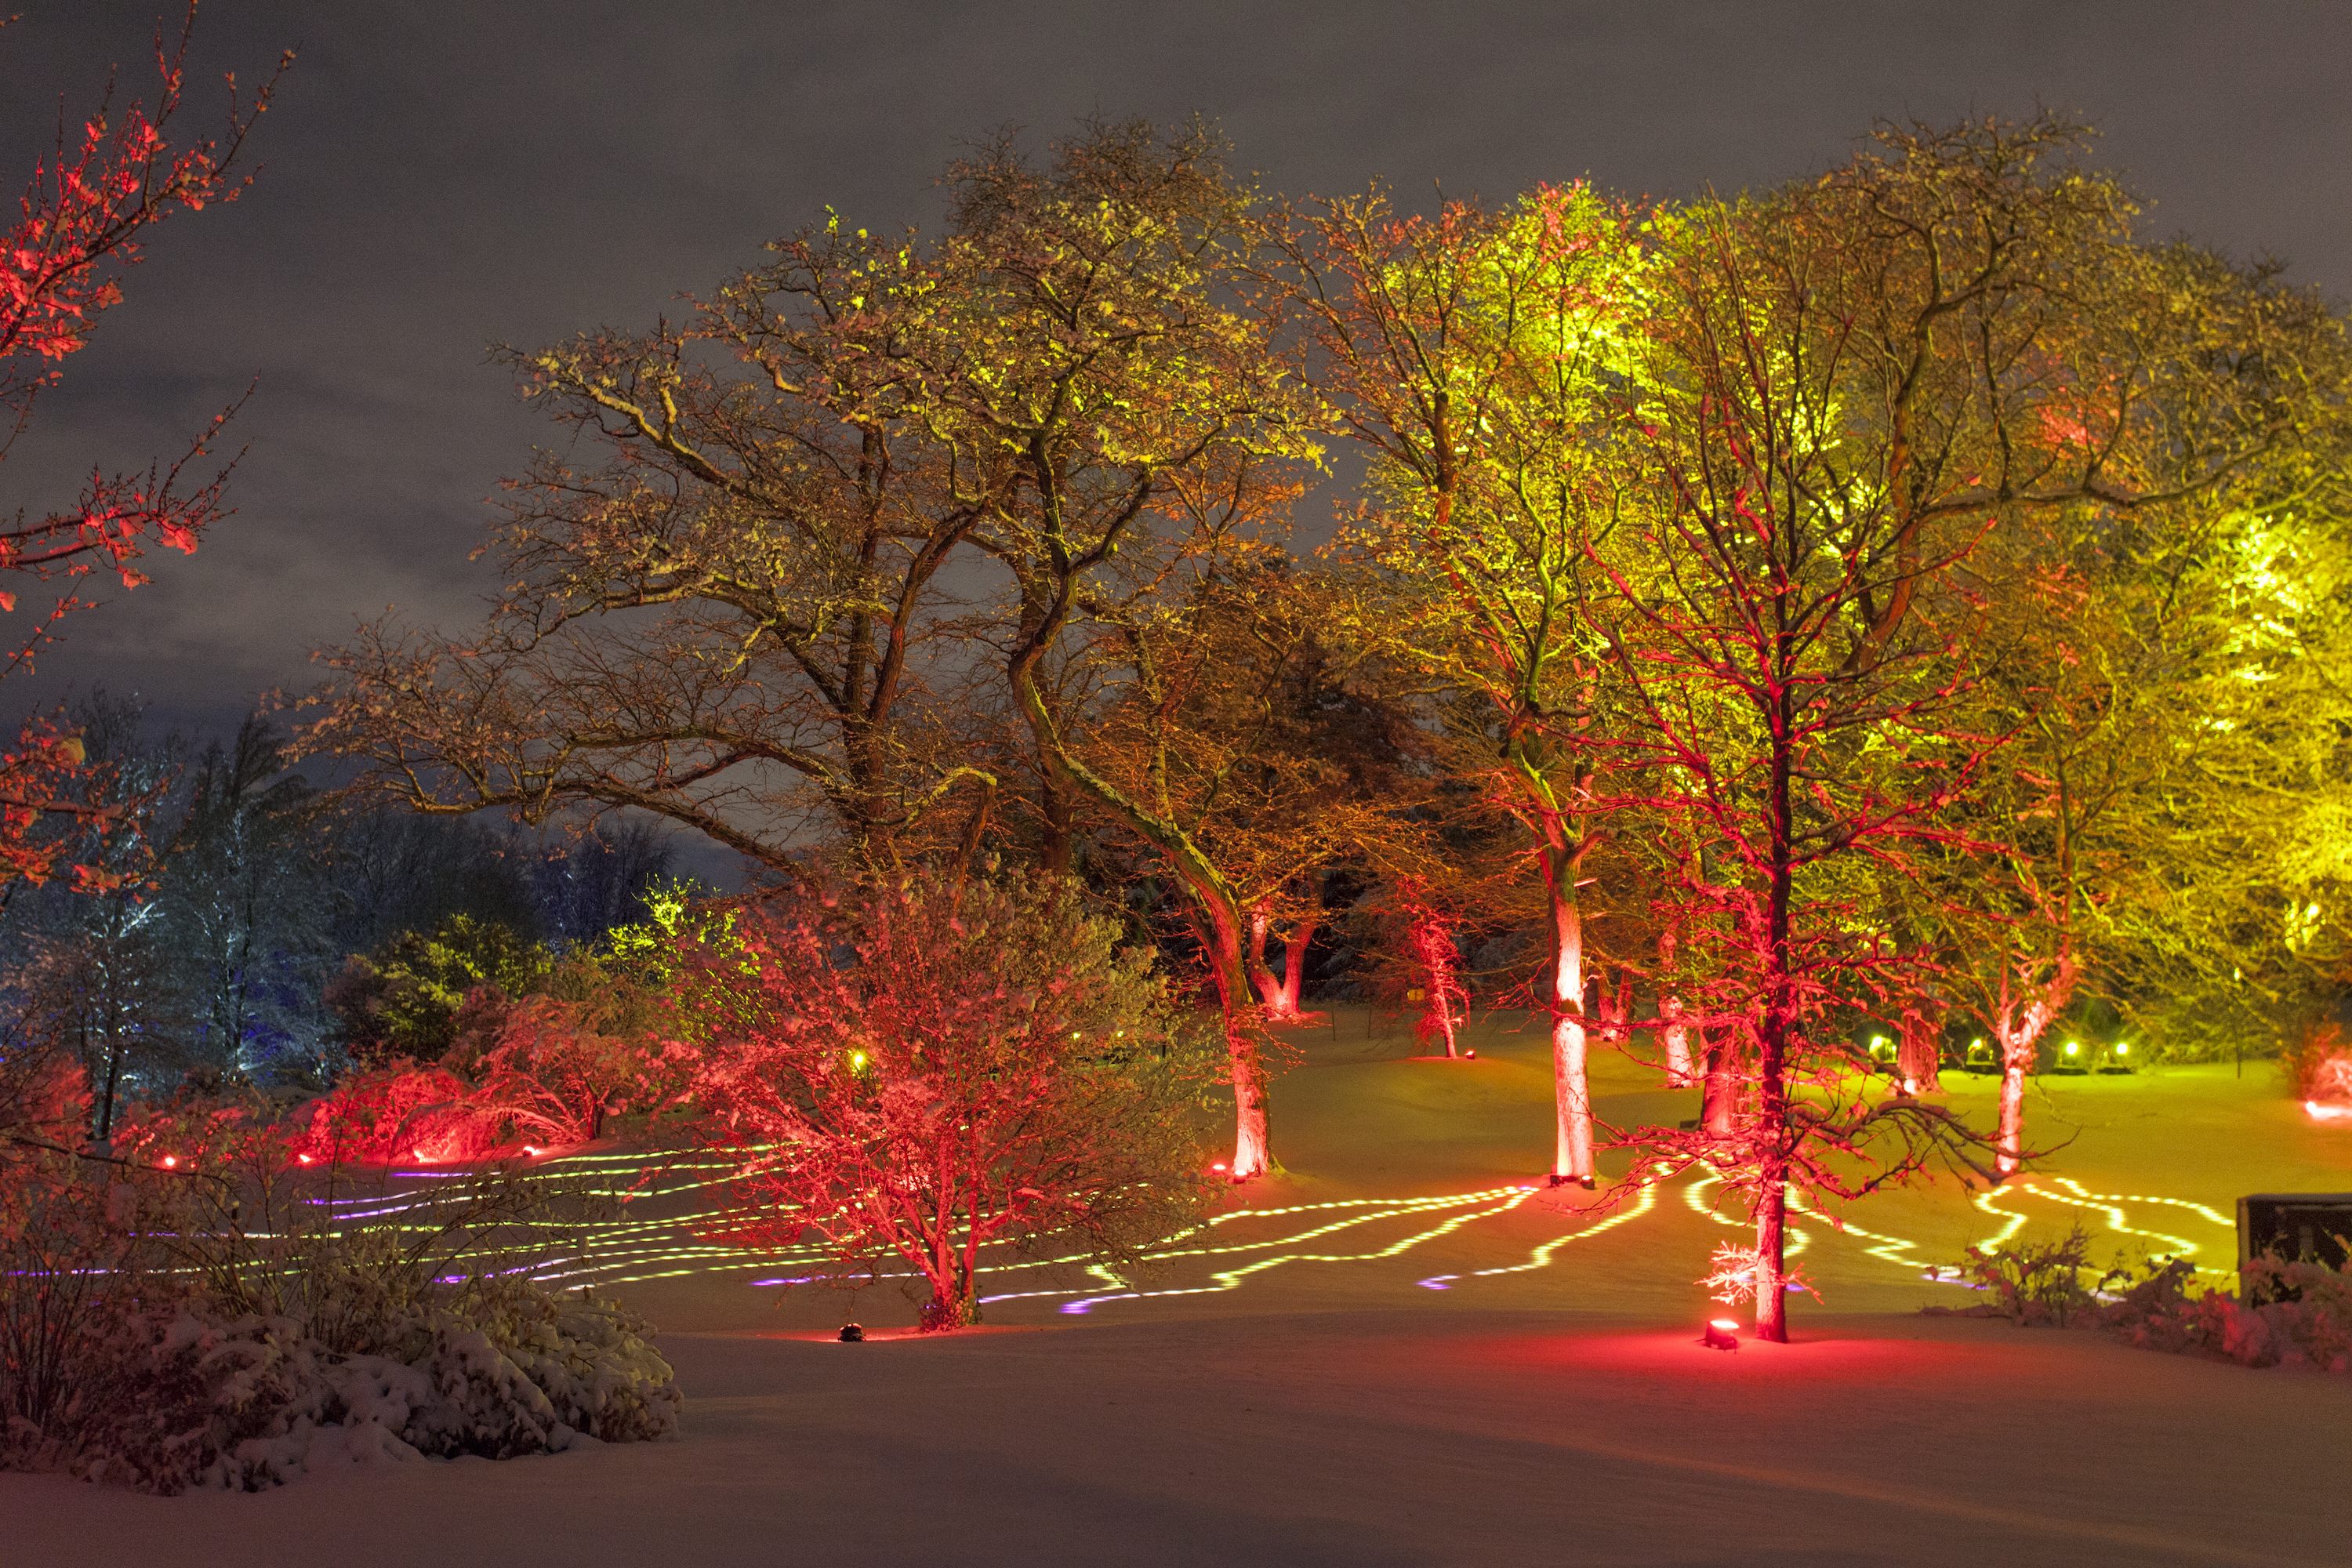 A drive-through lights display is coming to Morton Arboretum this fall